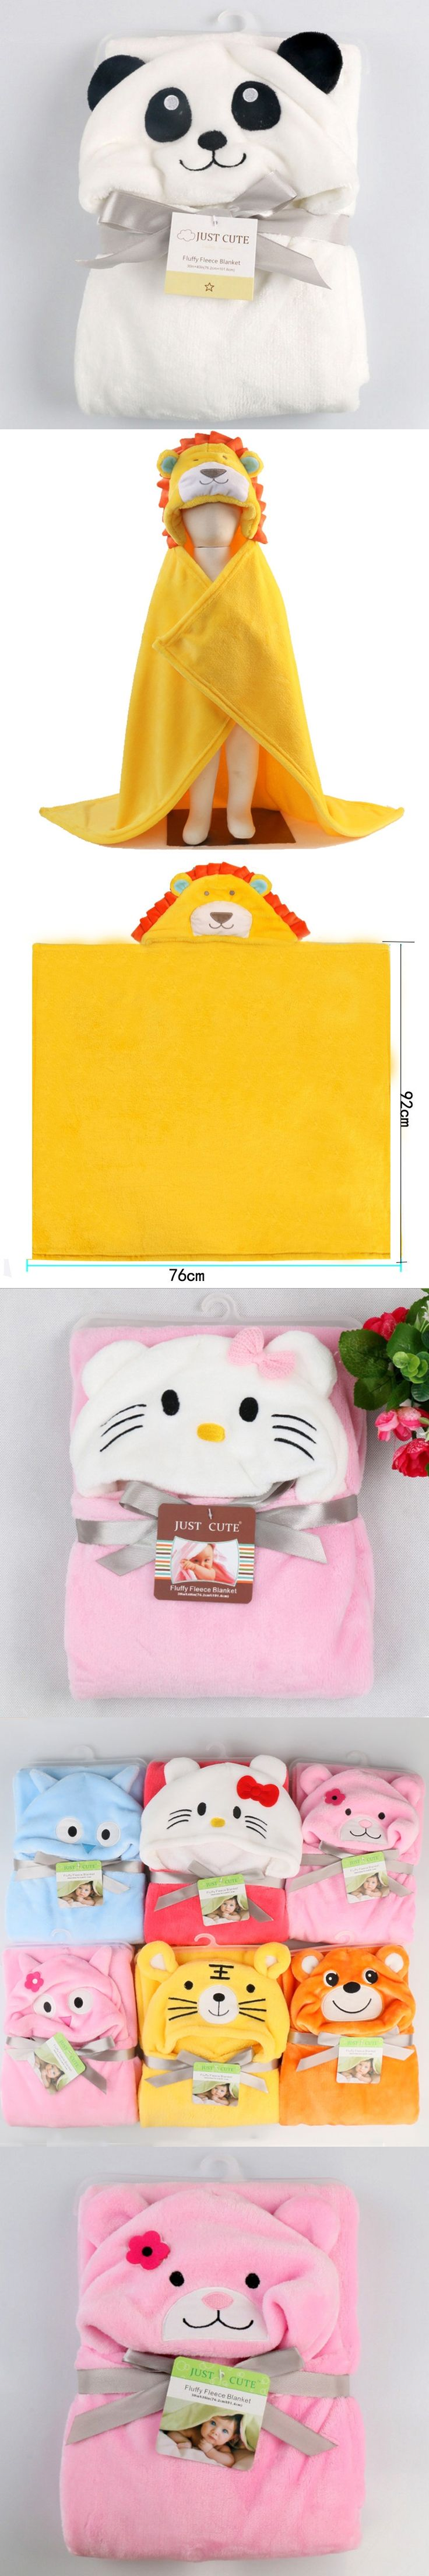 Baby Flannel Bath Towel Various Cartoon Design Cute Animal Panda KT Tiger Hooded Towel super Soft Cloak New Arrived For Newborn